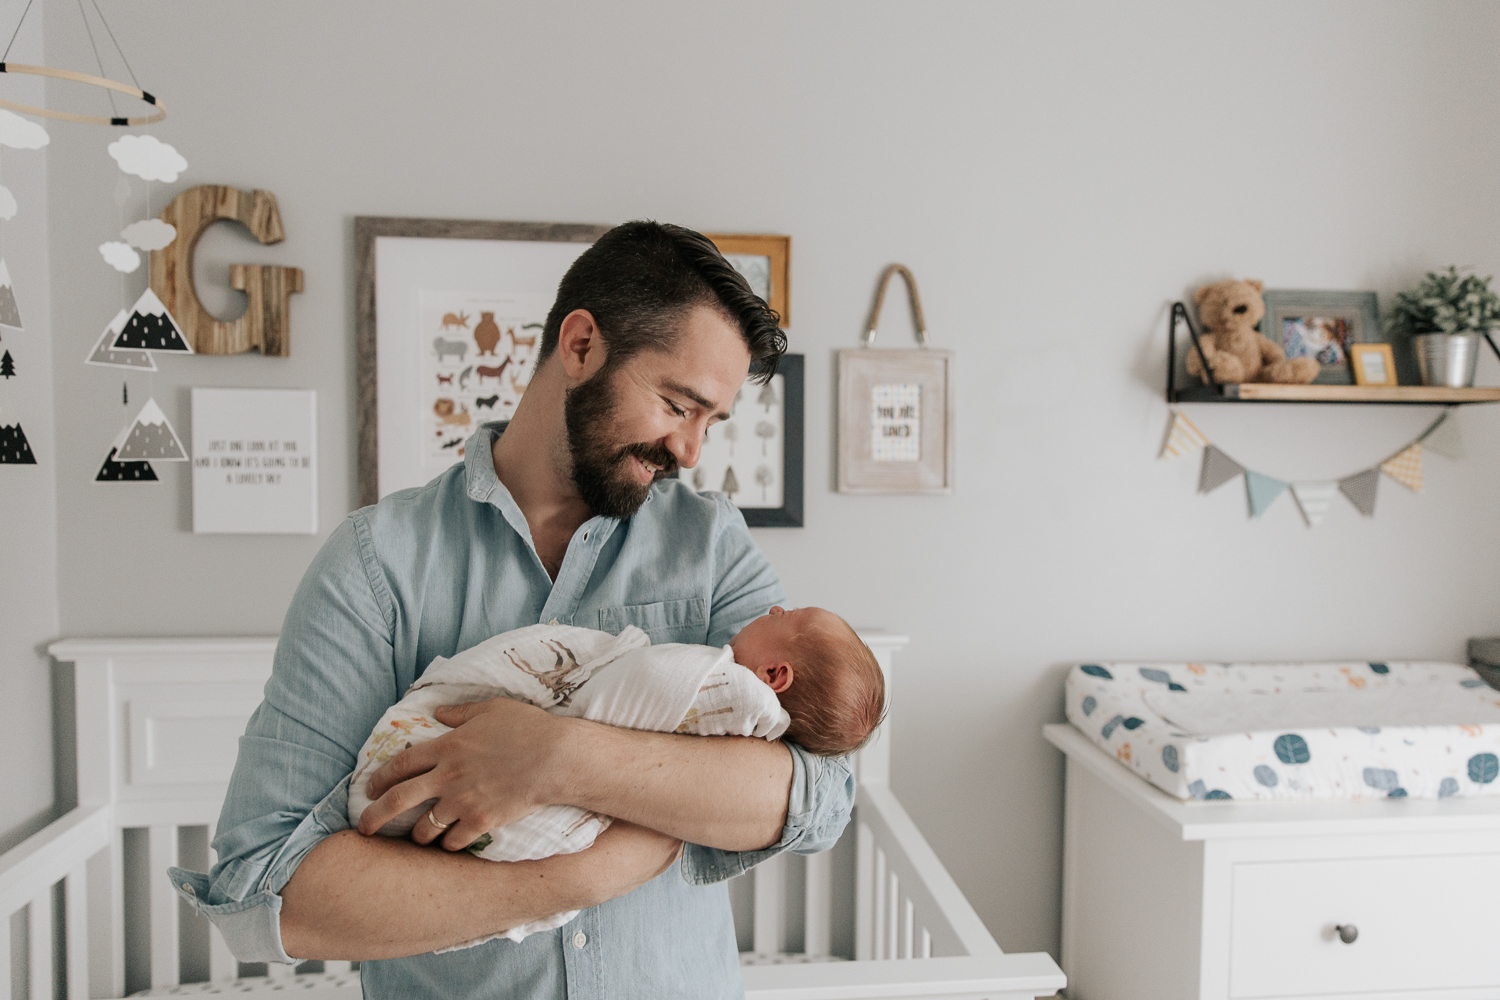 new father with brown hair and beard standing in nursery in front of crib holding 3 week old swaddled baby boy with red hair in his arms and smiling at son - Newmarket Lifestyle Photos